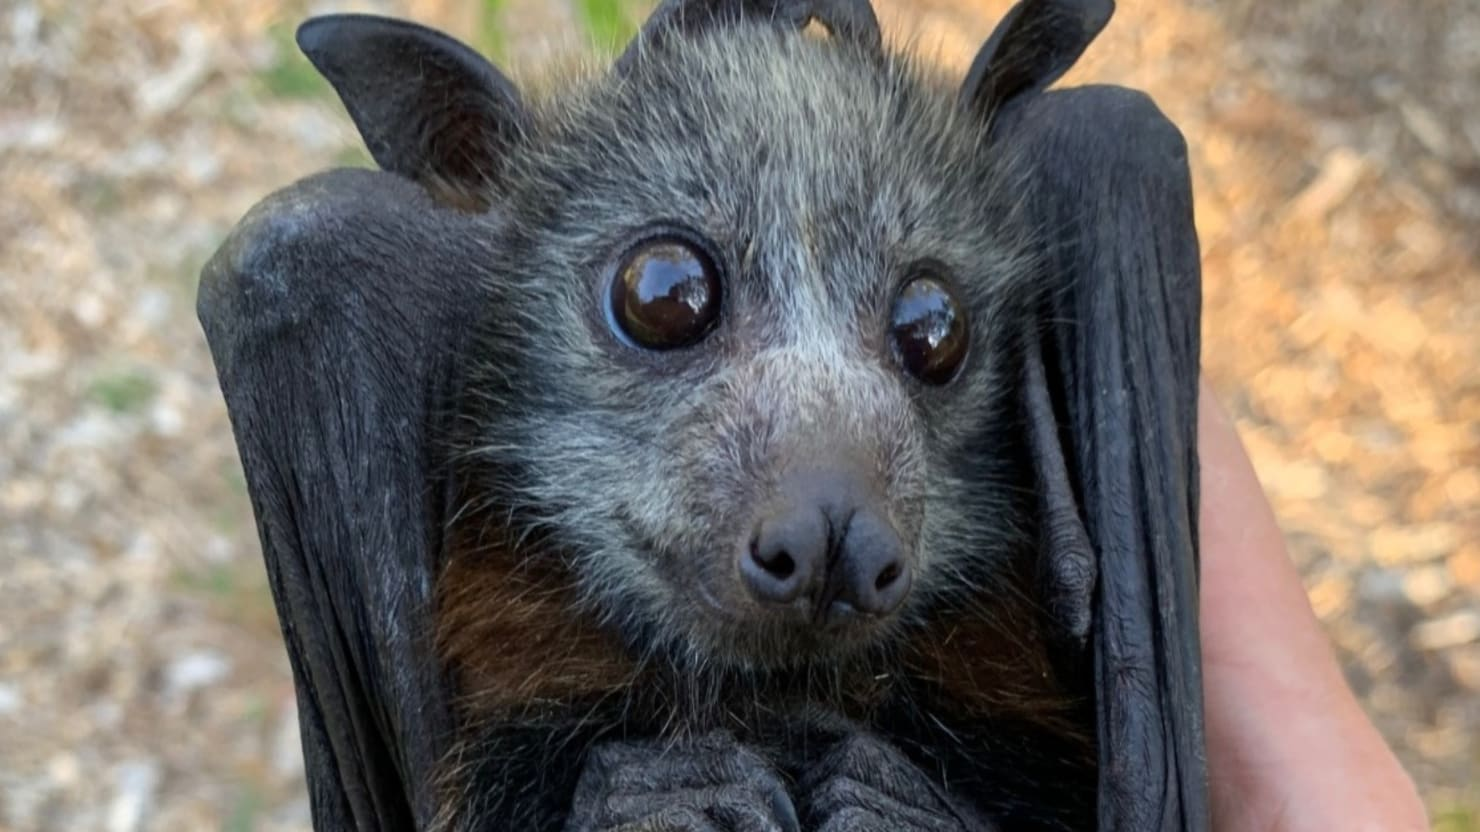 Australian Bushfires and Heat Are Killing Flying Foxes by the Thousands